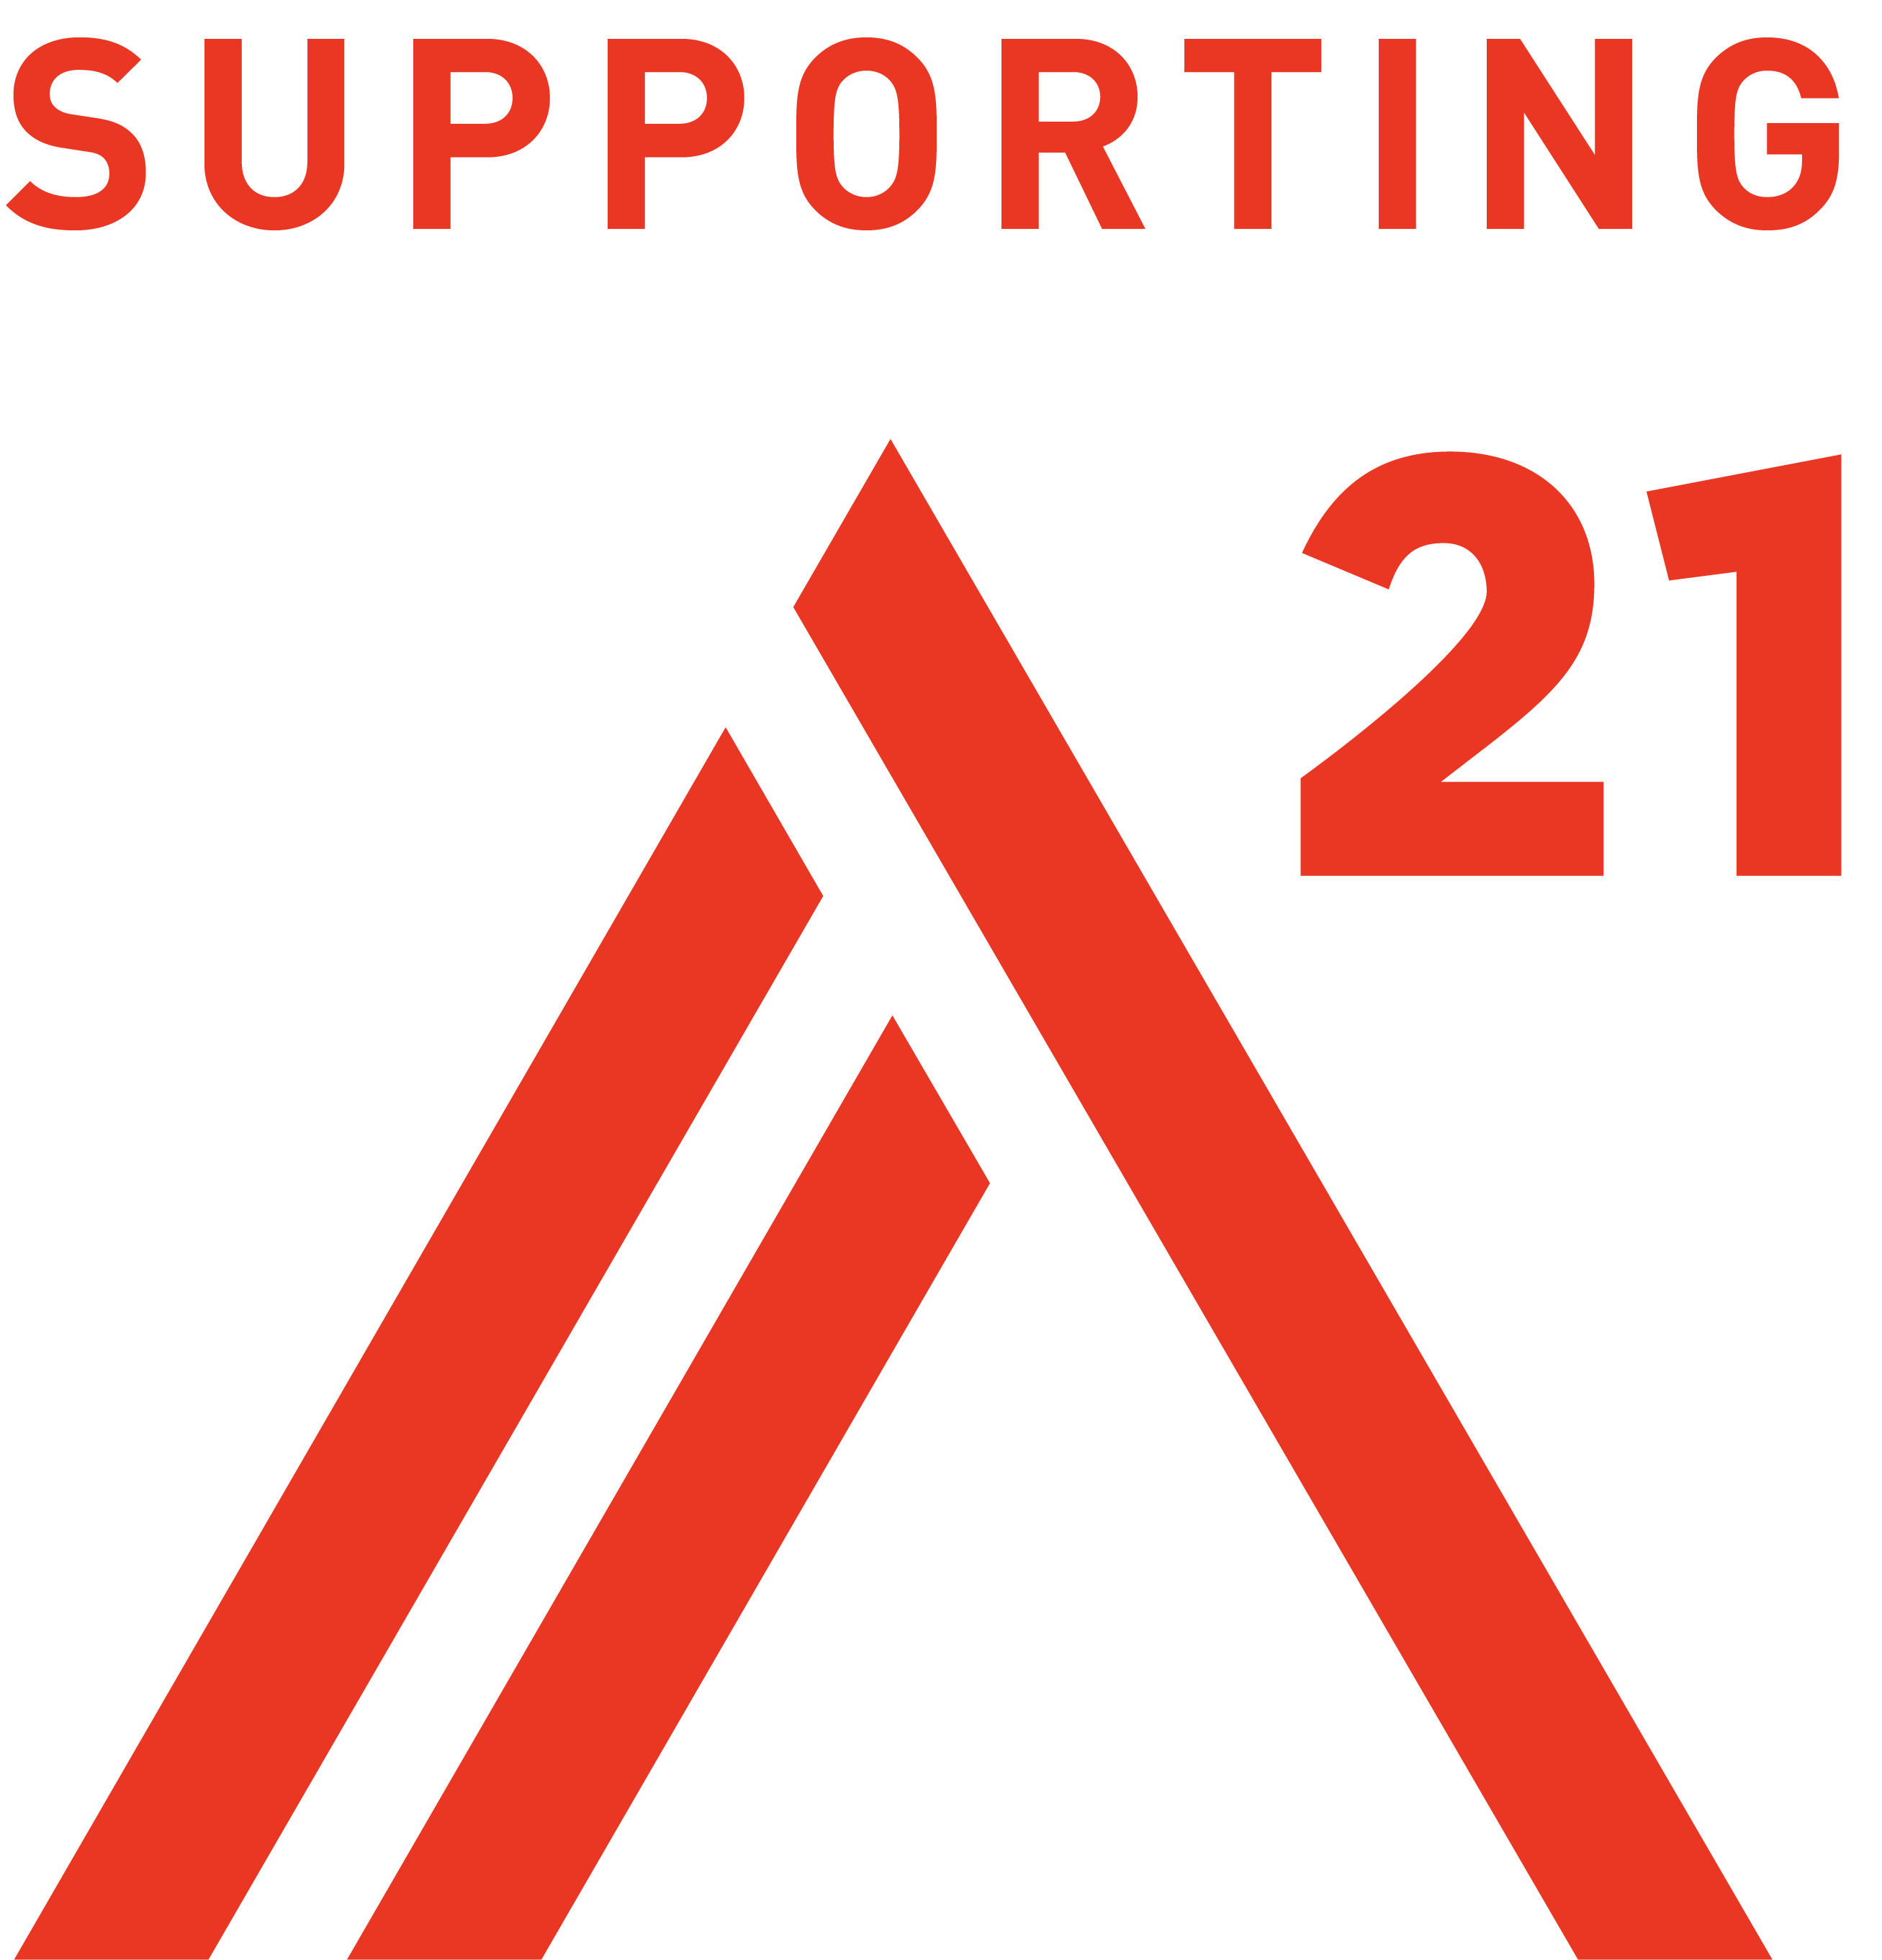 A21_logo_supporting_rorange